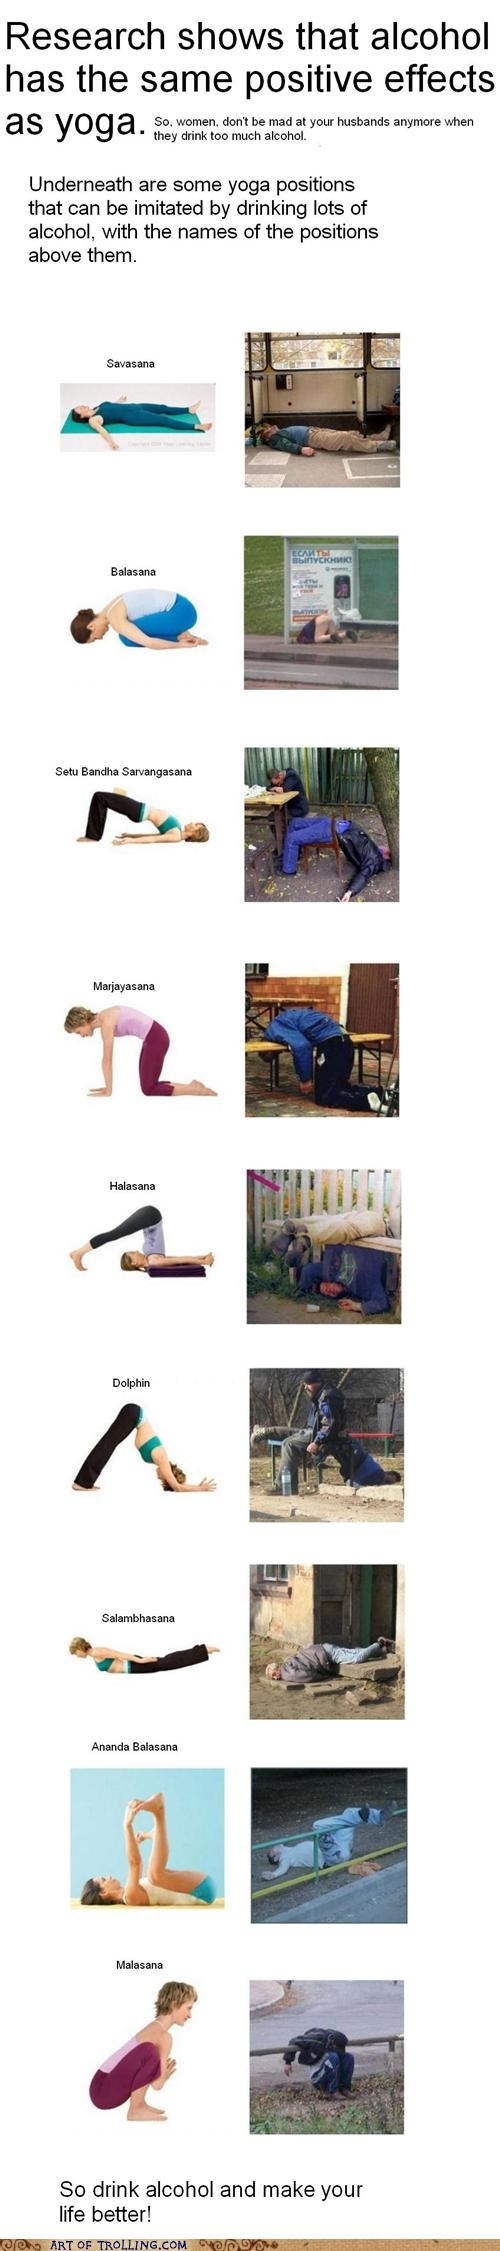 drinking passed out positions yoga